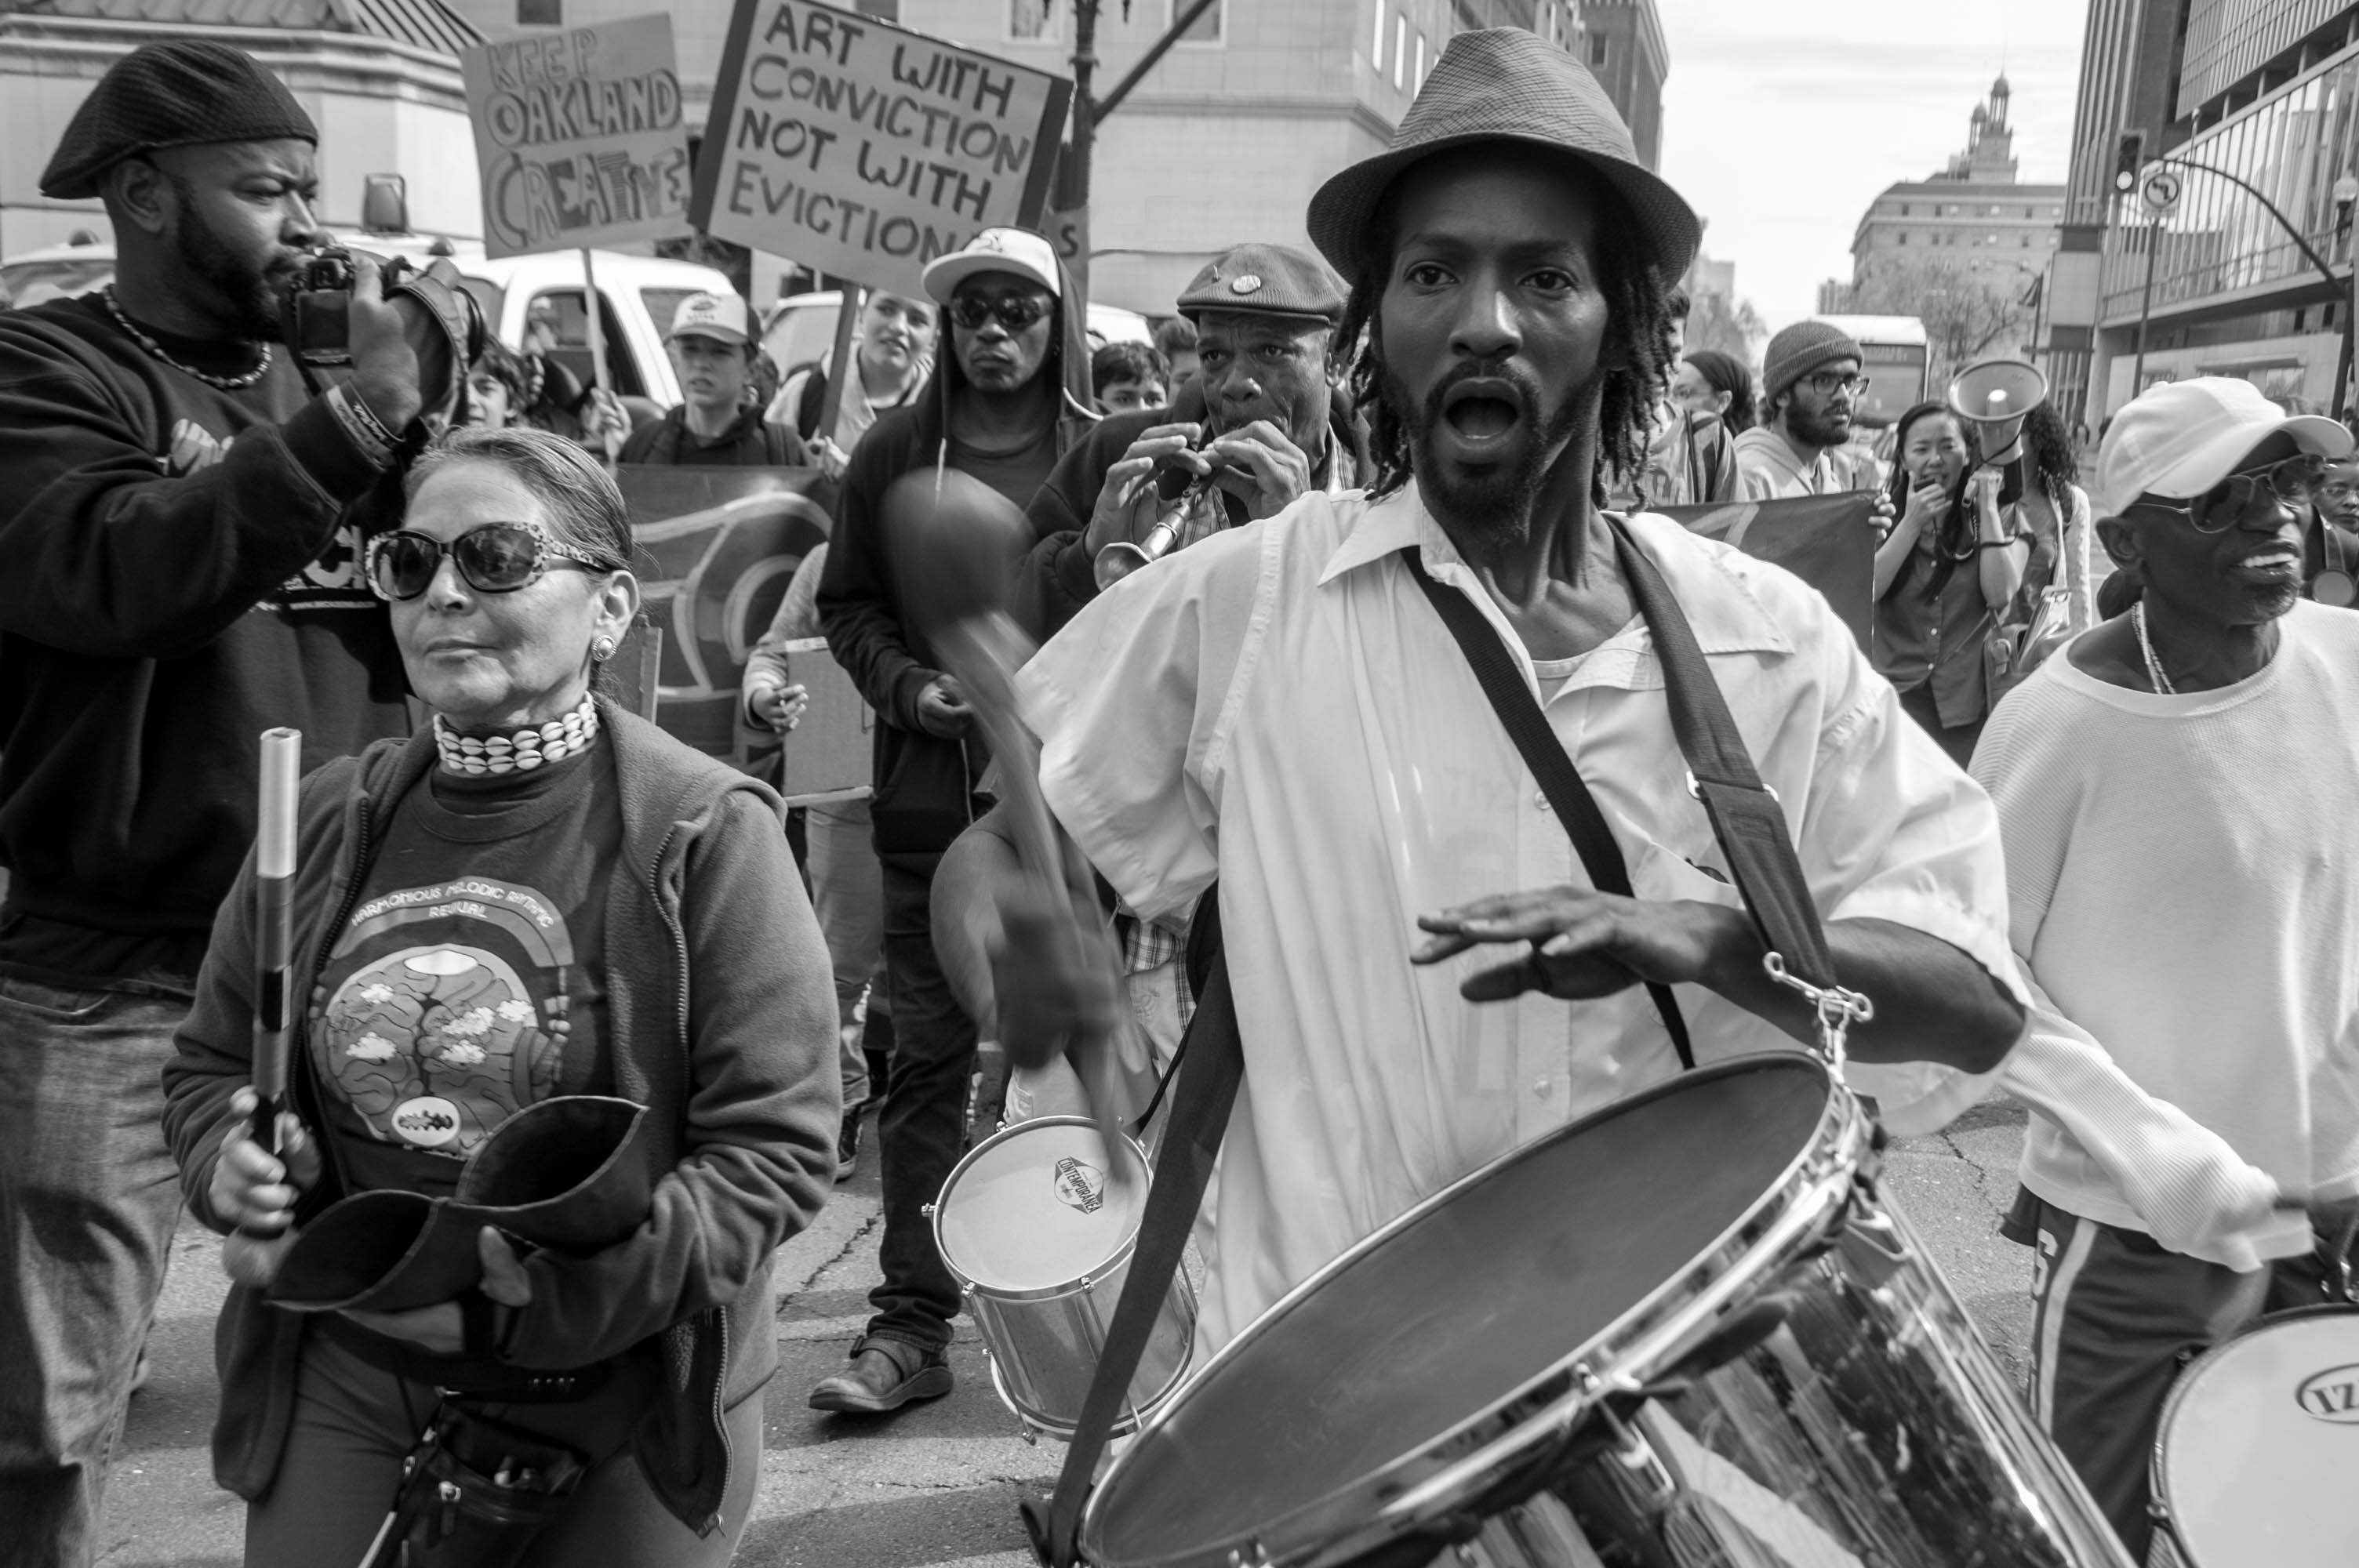 During a protest, a man plays the drums and a woman walks beside him